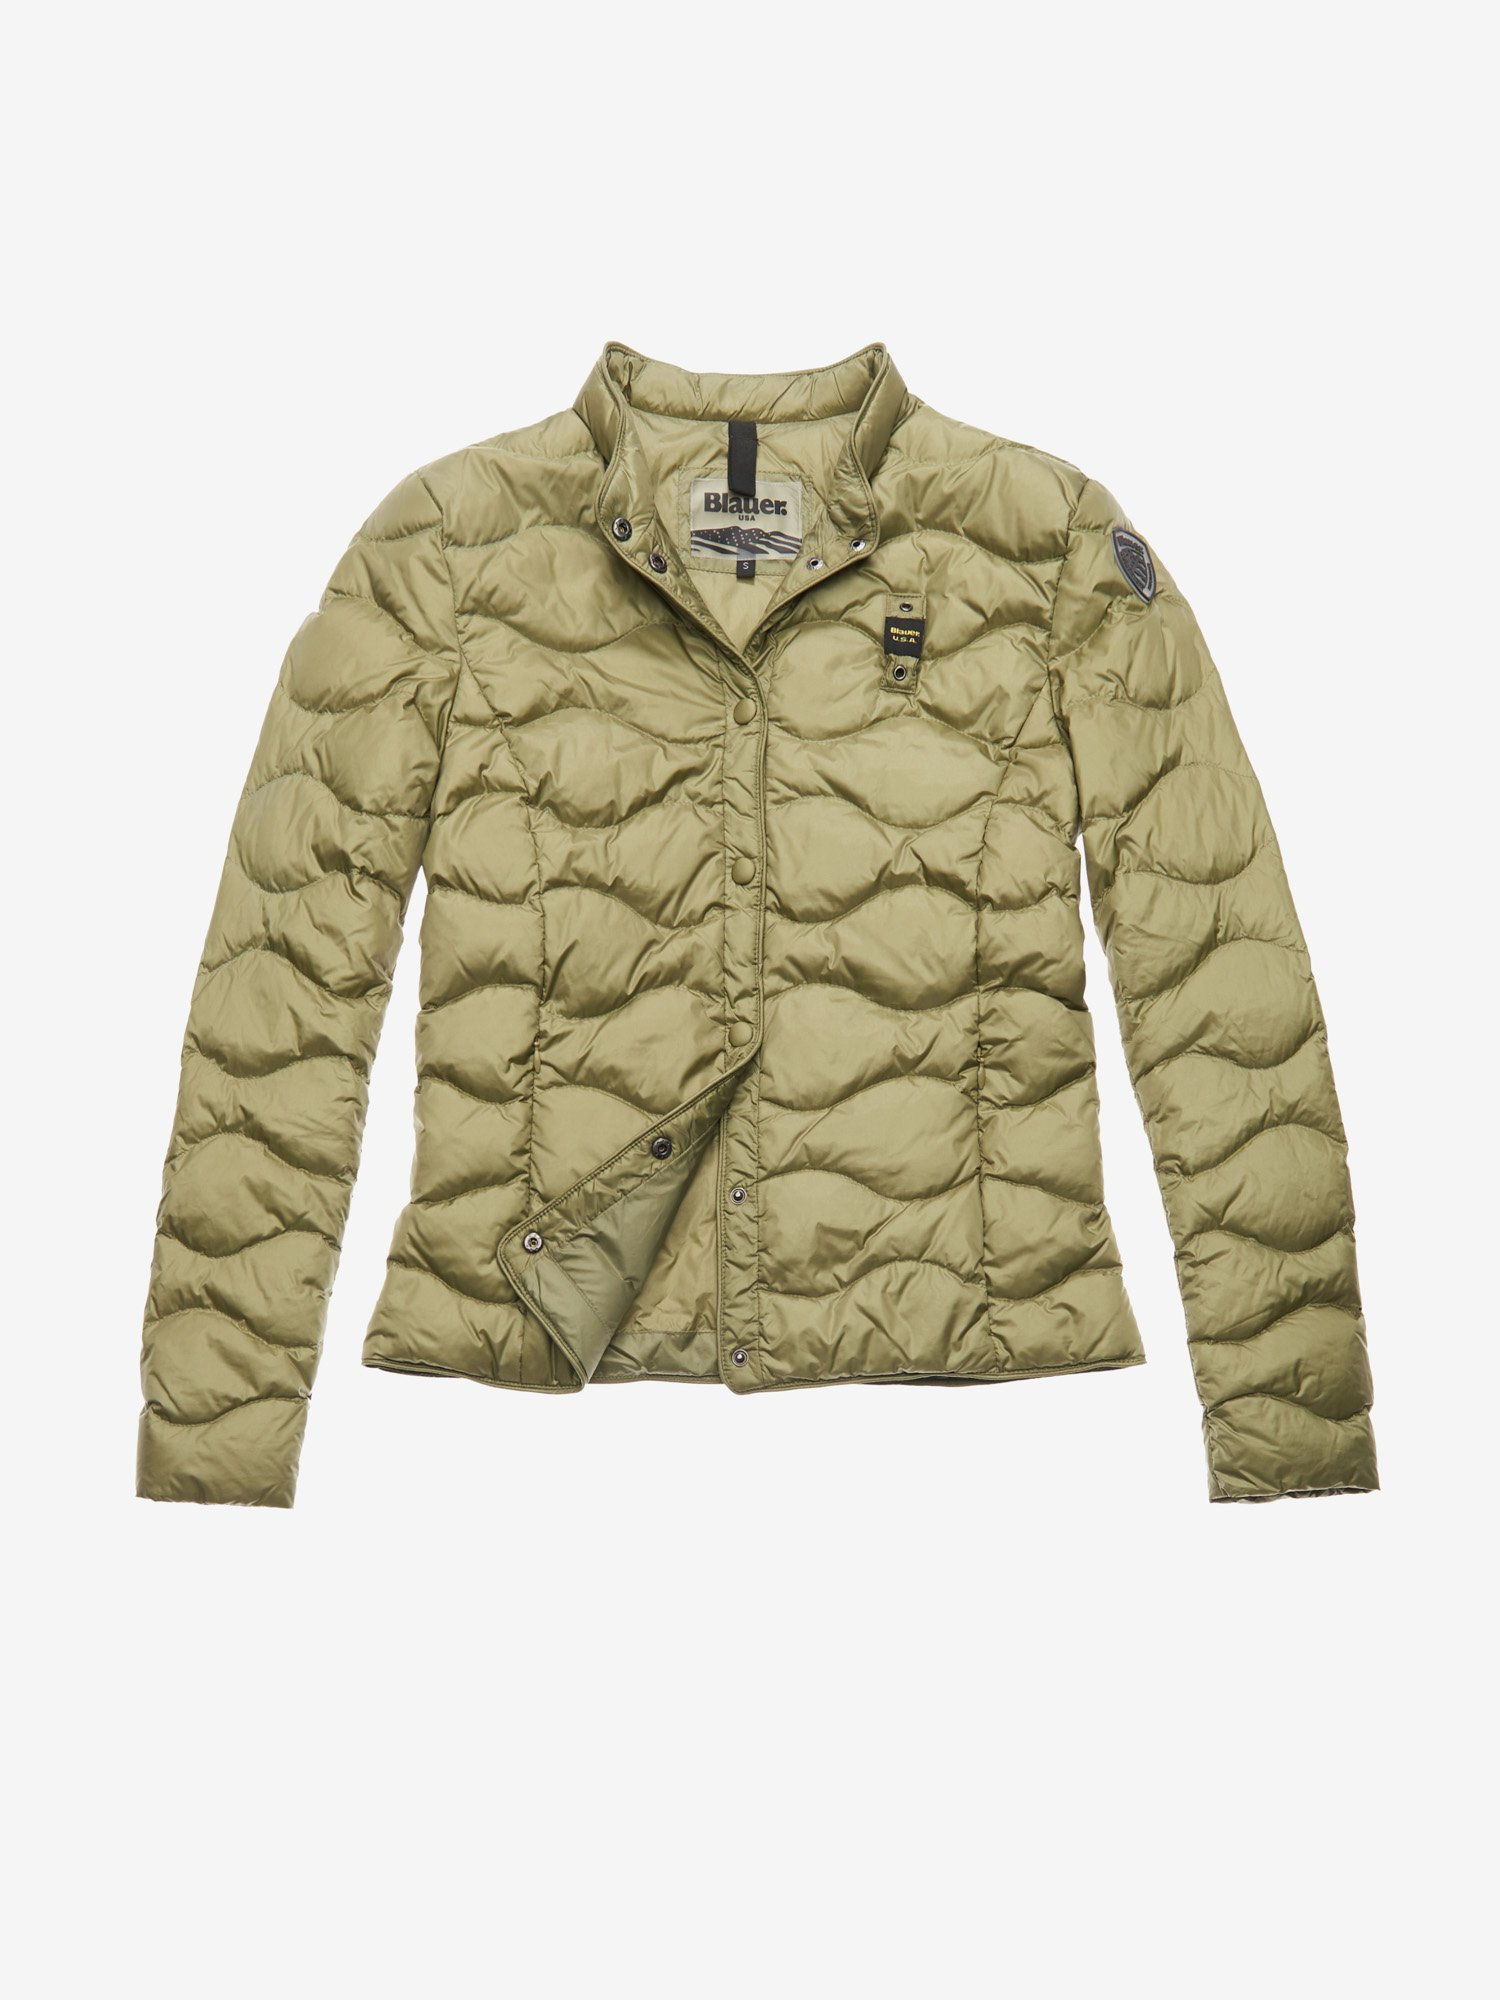 COX 100 GR WAVE-QUILTED DOWN JACKET - Blauer